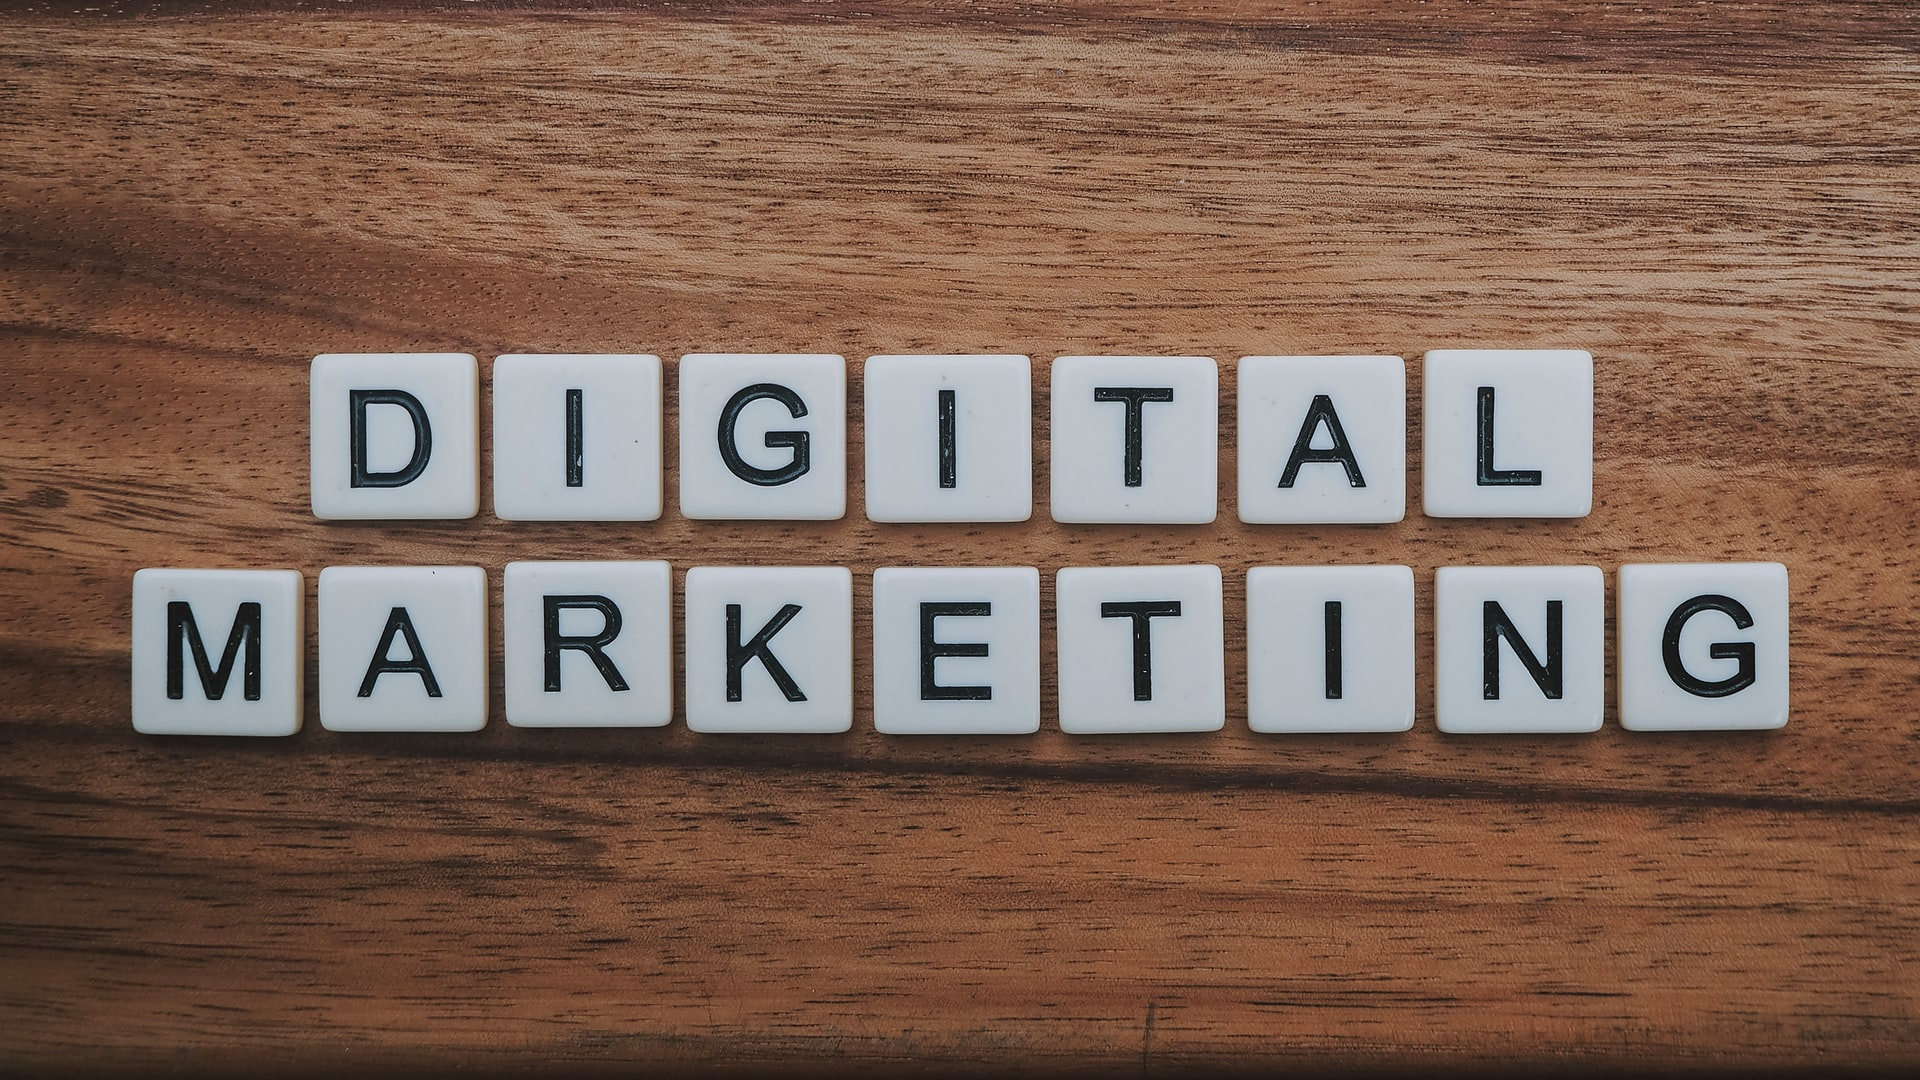 These are the building blocks for launching your freelance digital marketing career.